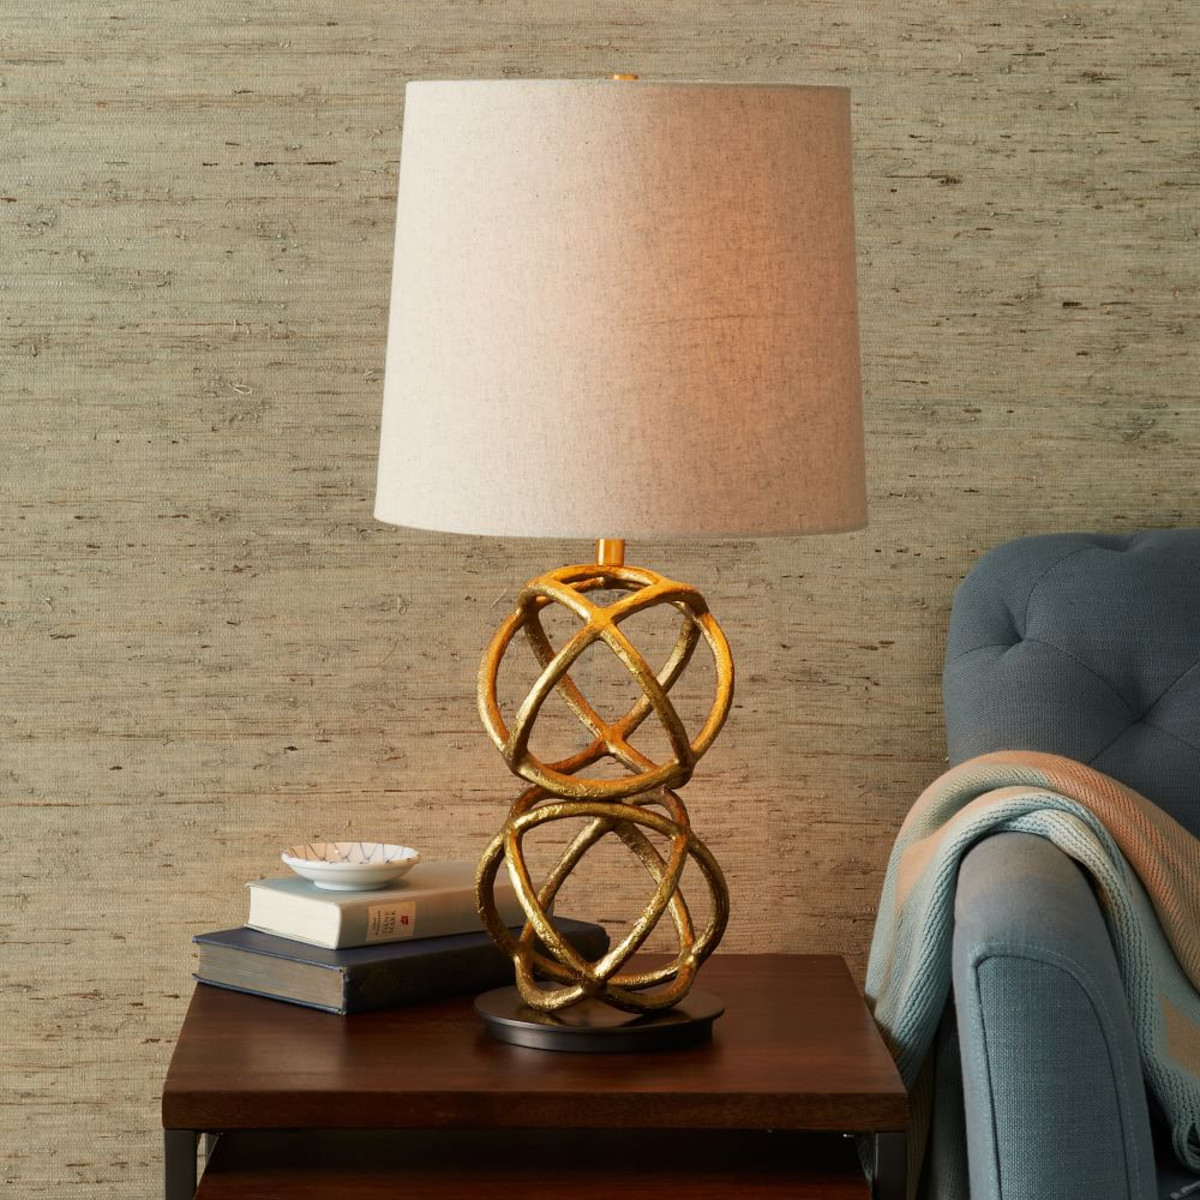 Among Our Variety Of Home Decor Products Special And Designer Lighting Stand Out We Have Beautiful Collection Lamps In Diffe Sizes